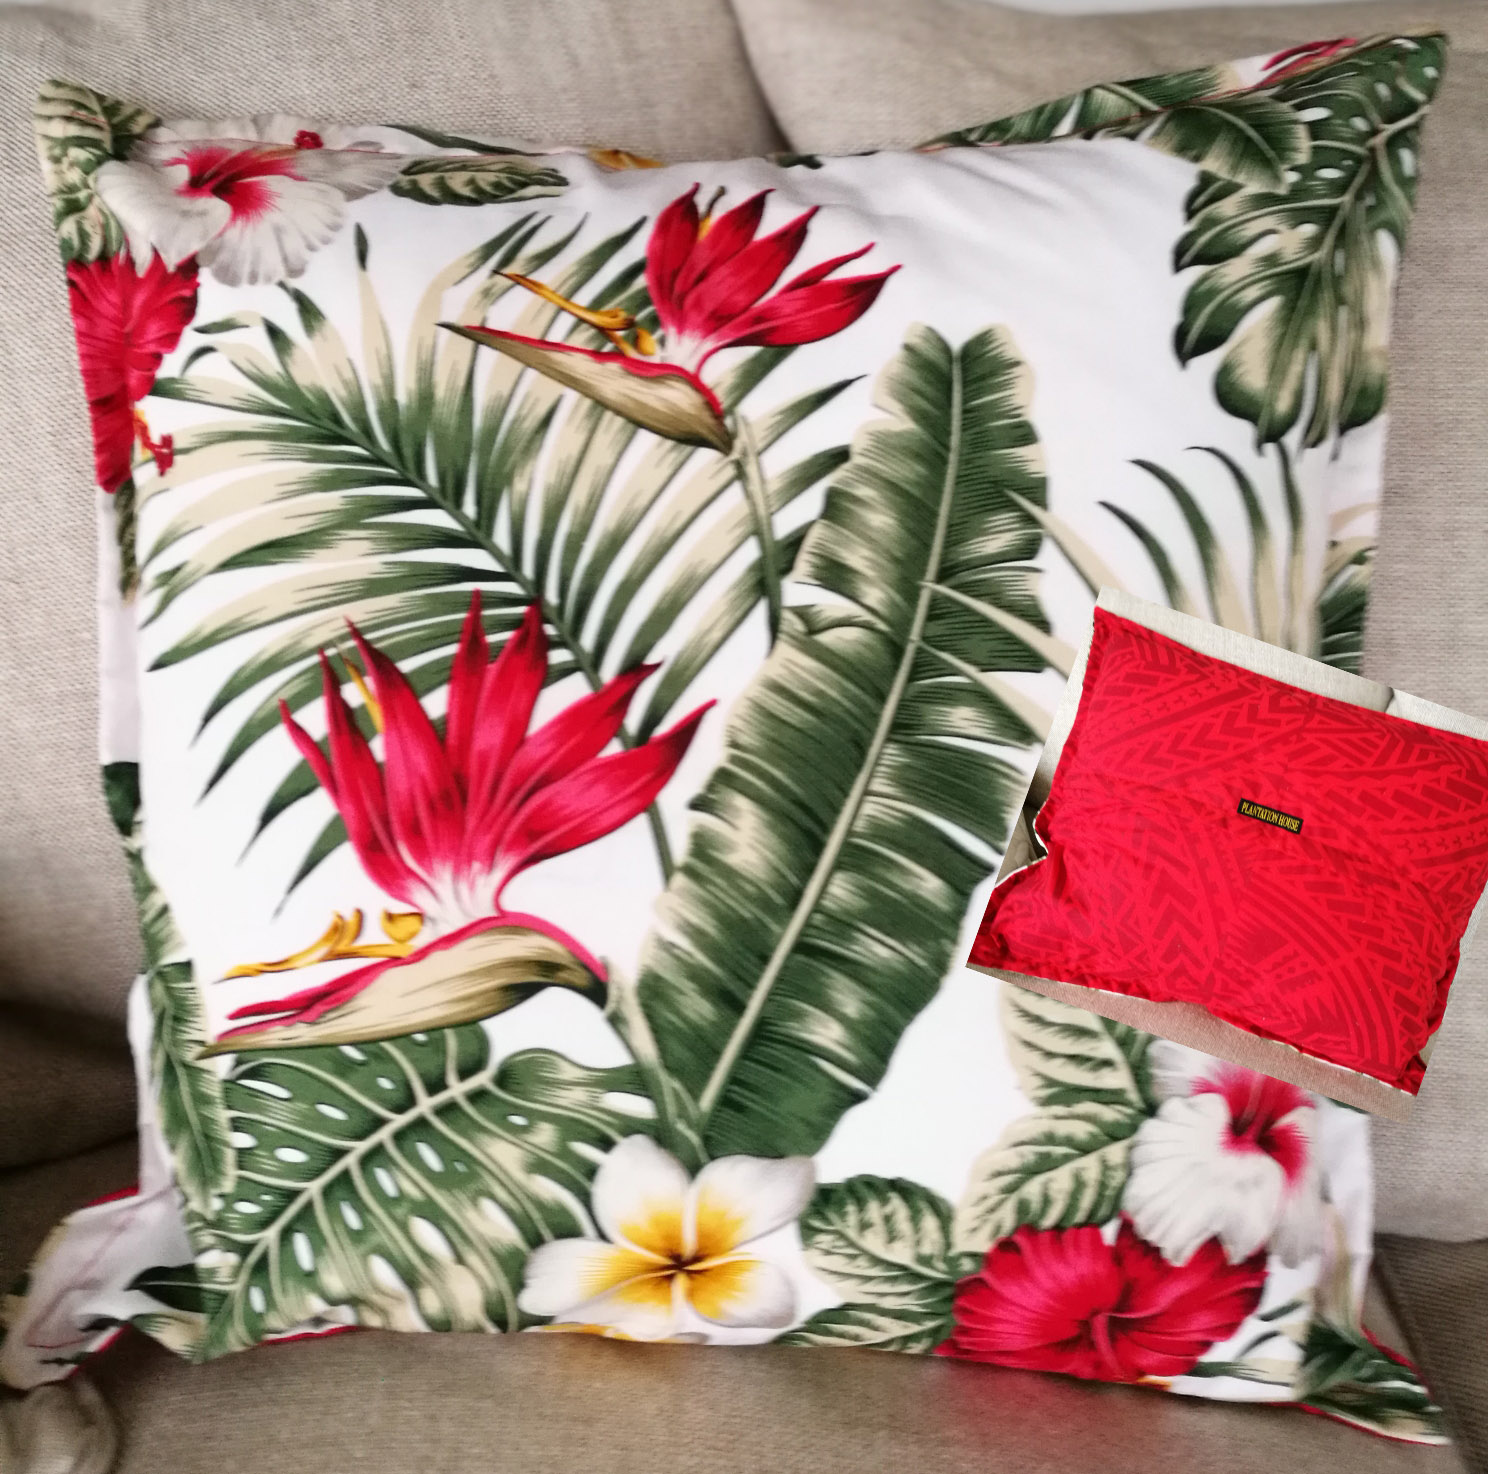 Samoan Cushion Cover 46cm x 46cm